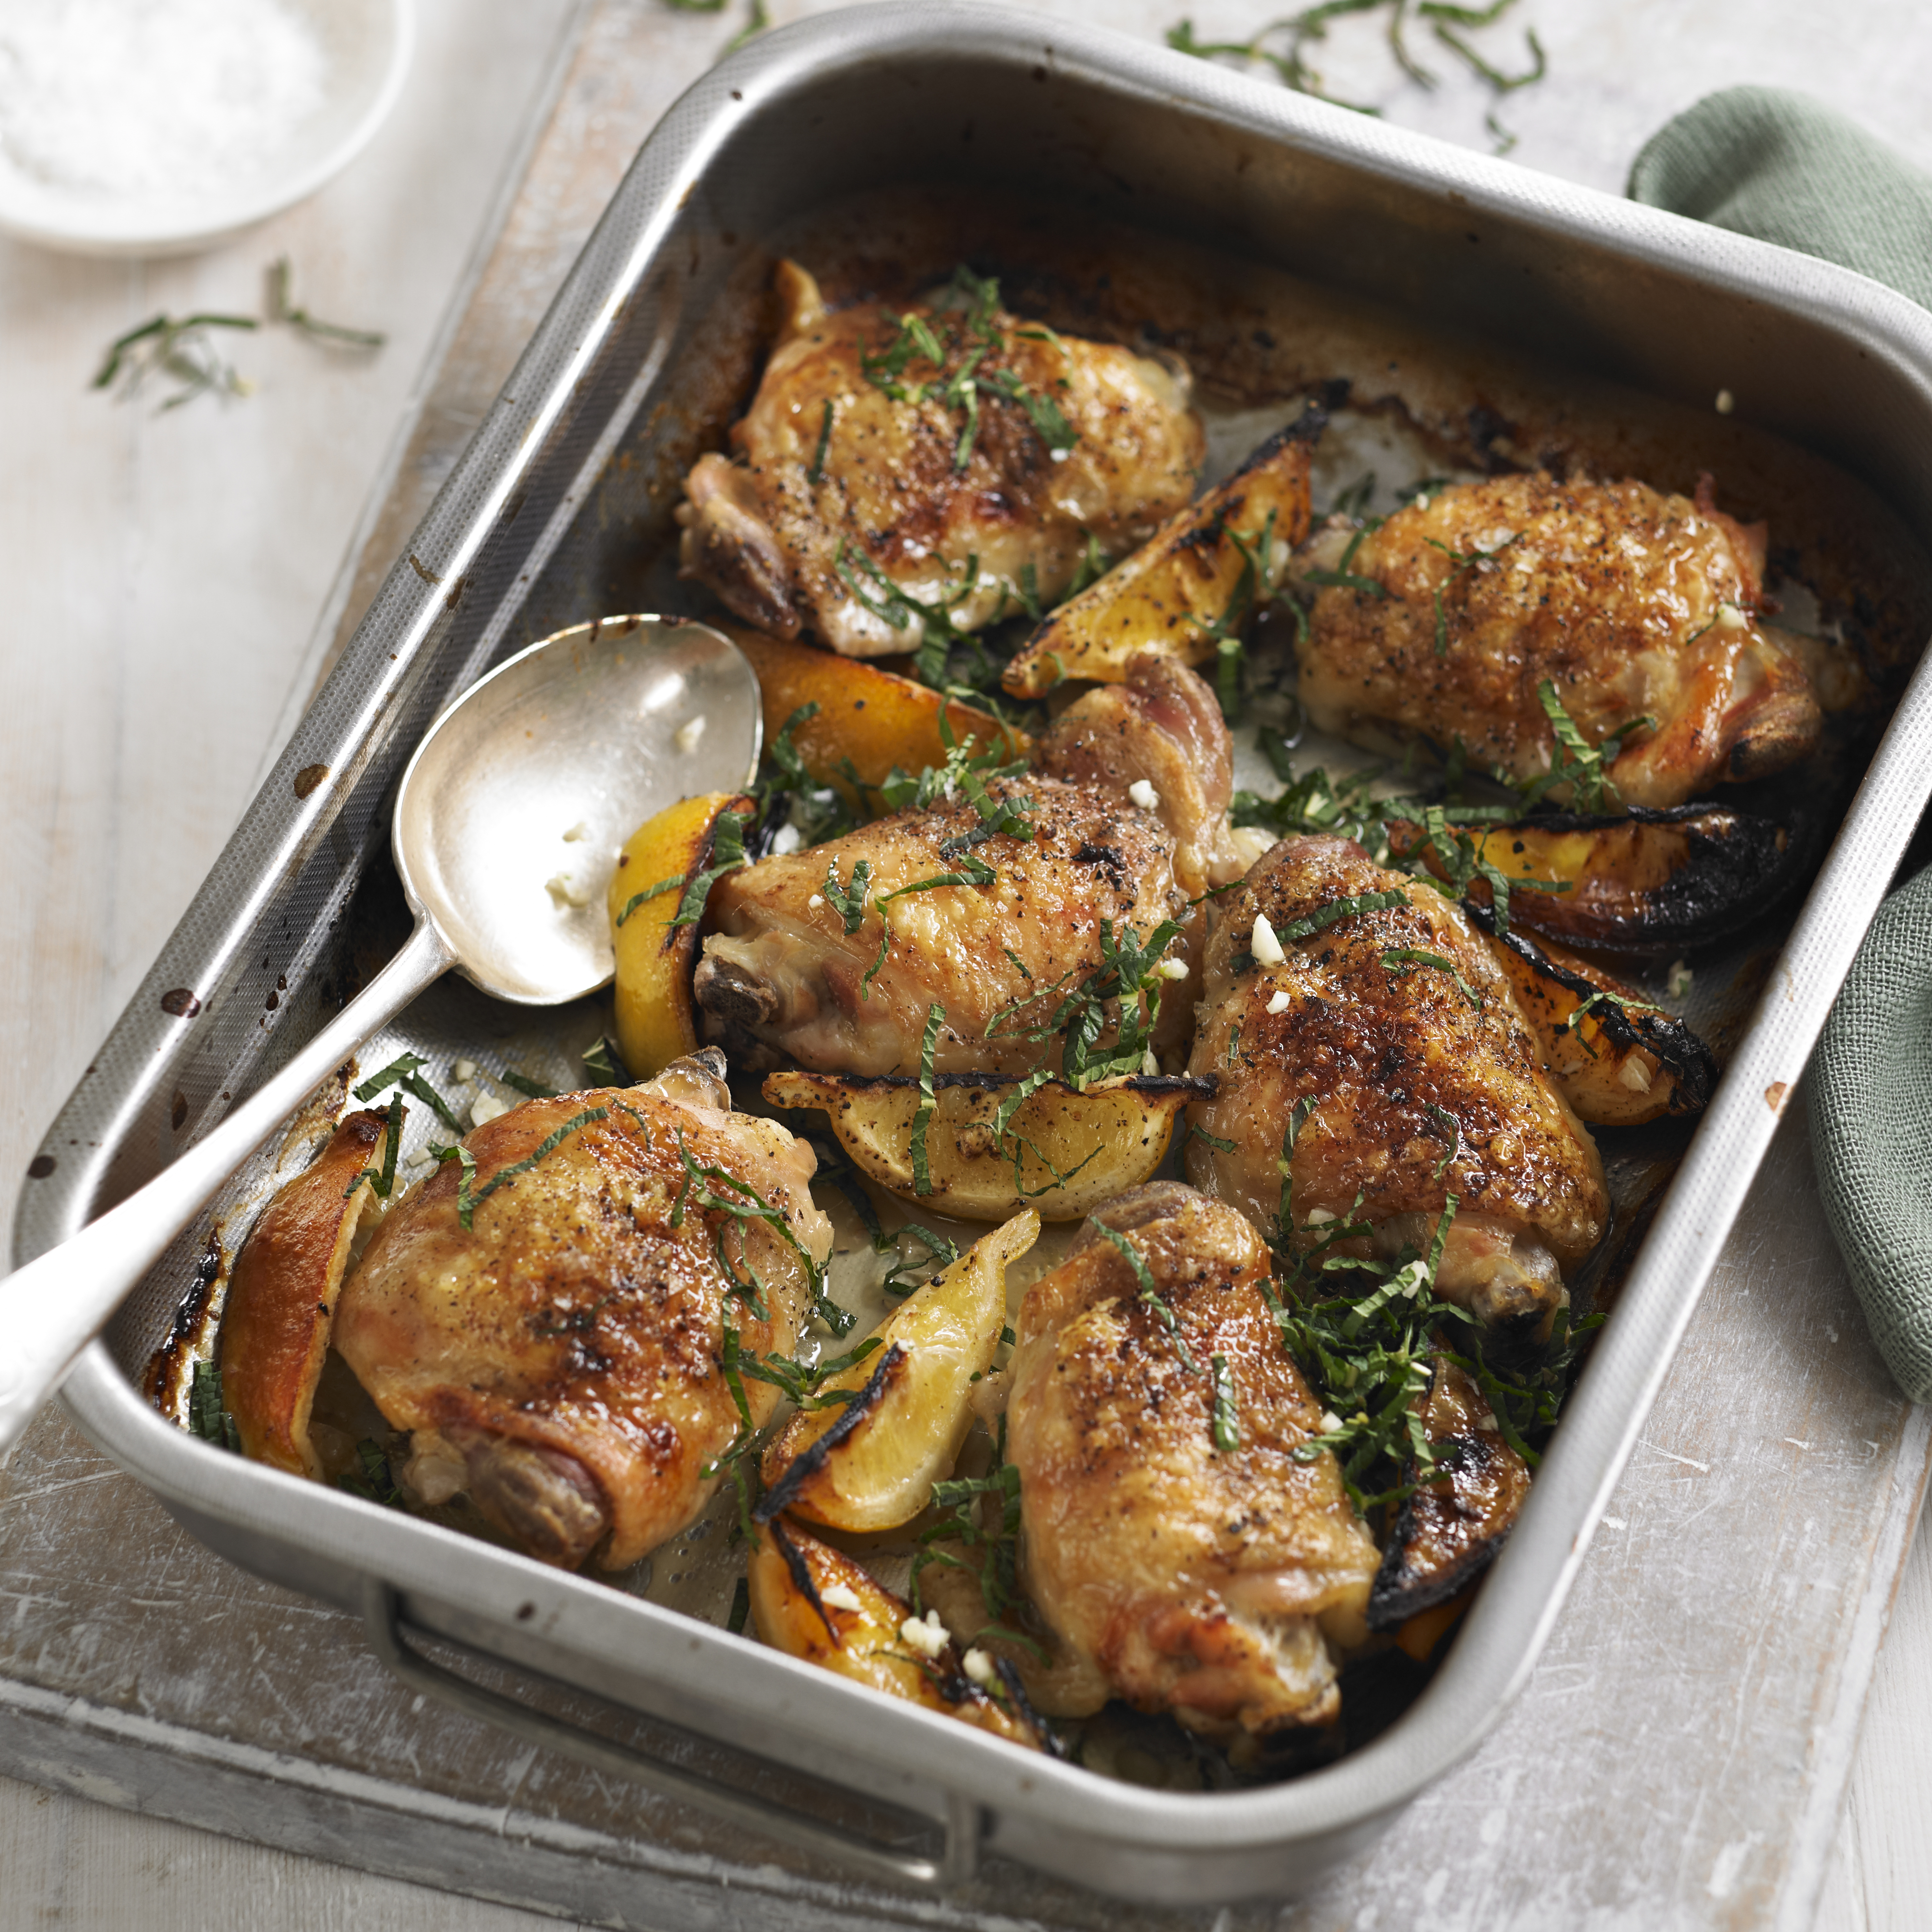 Roast chicken thighs with lemon and mint recipe